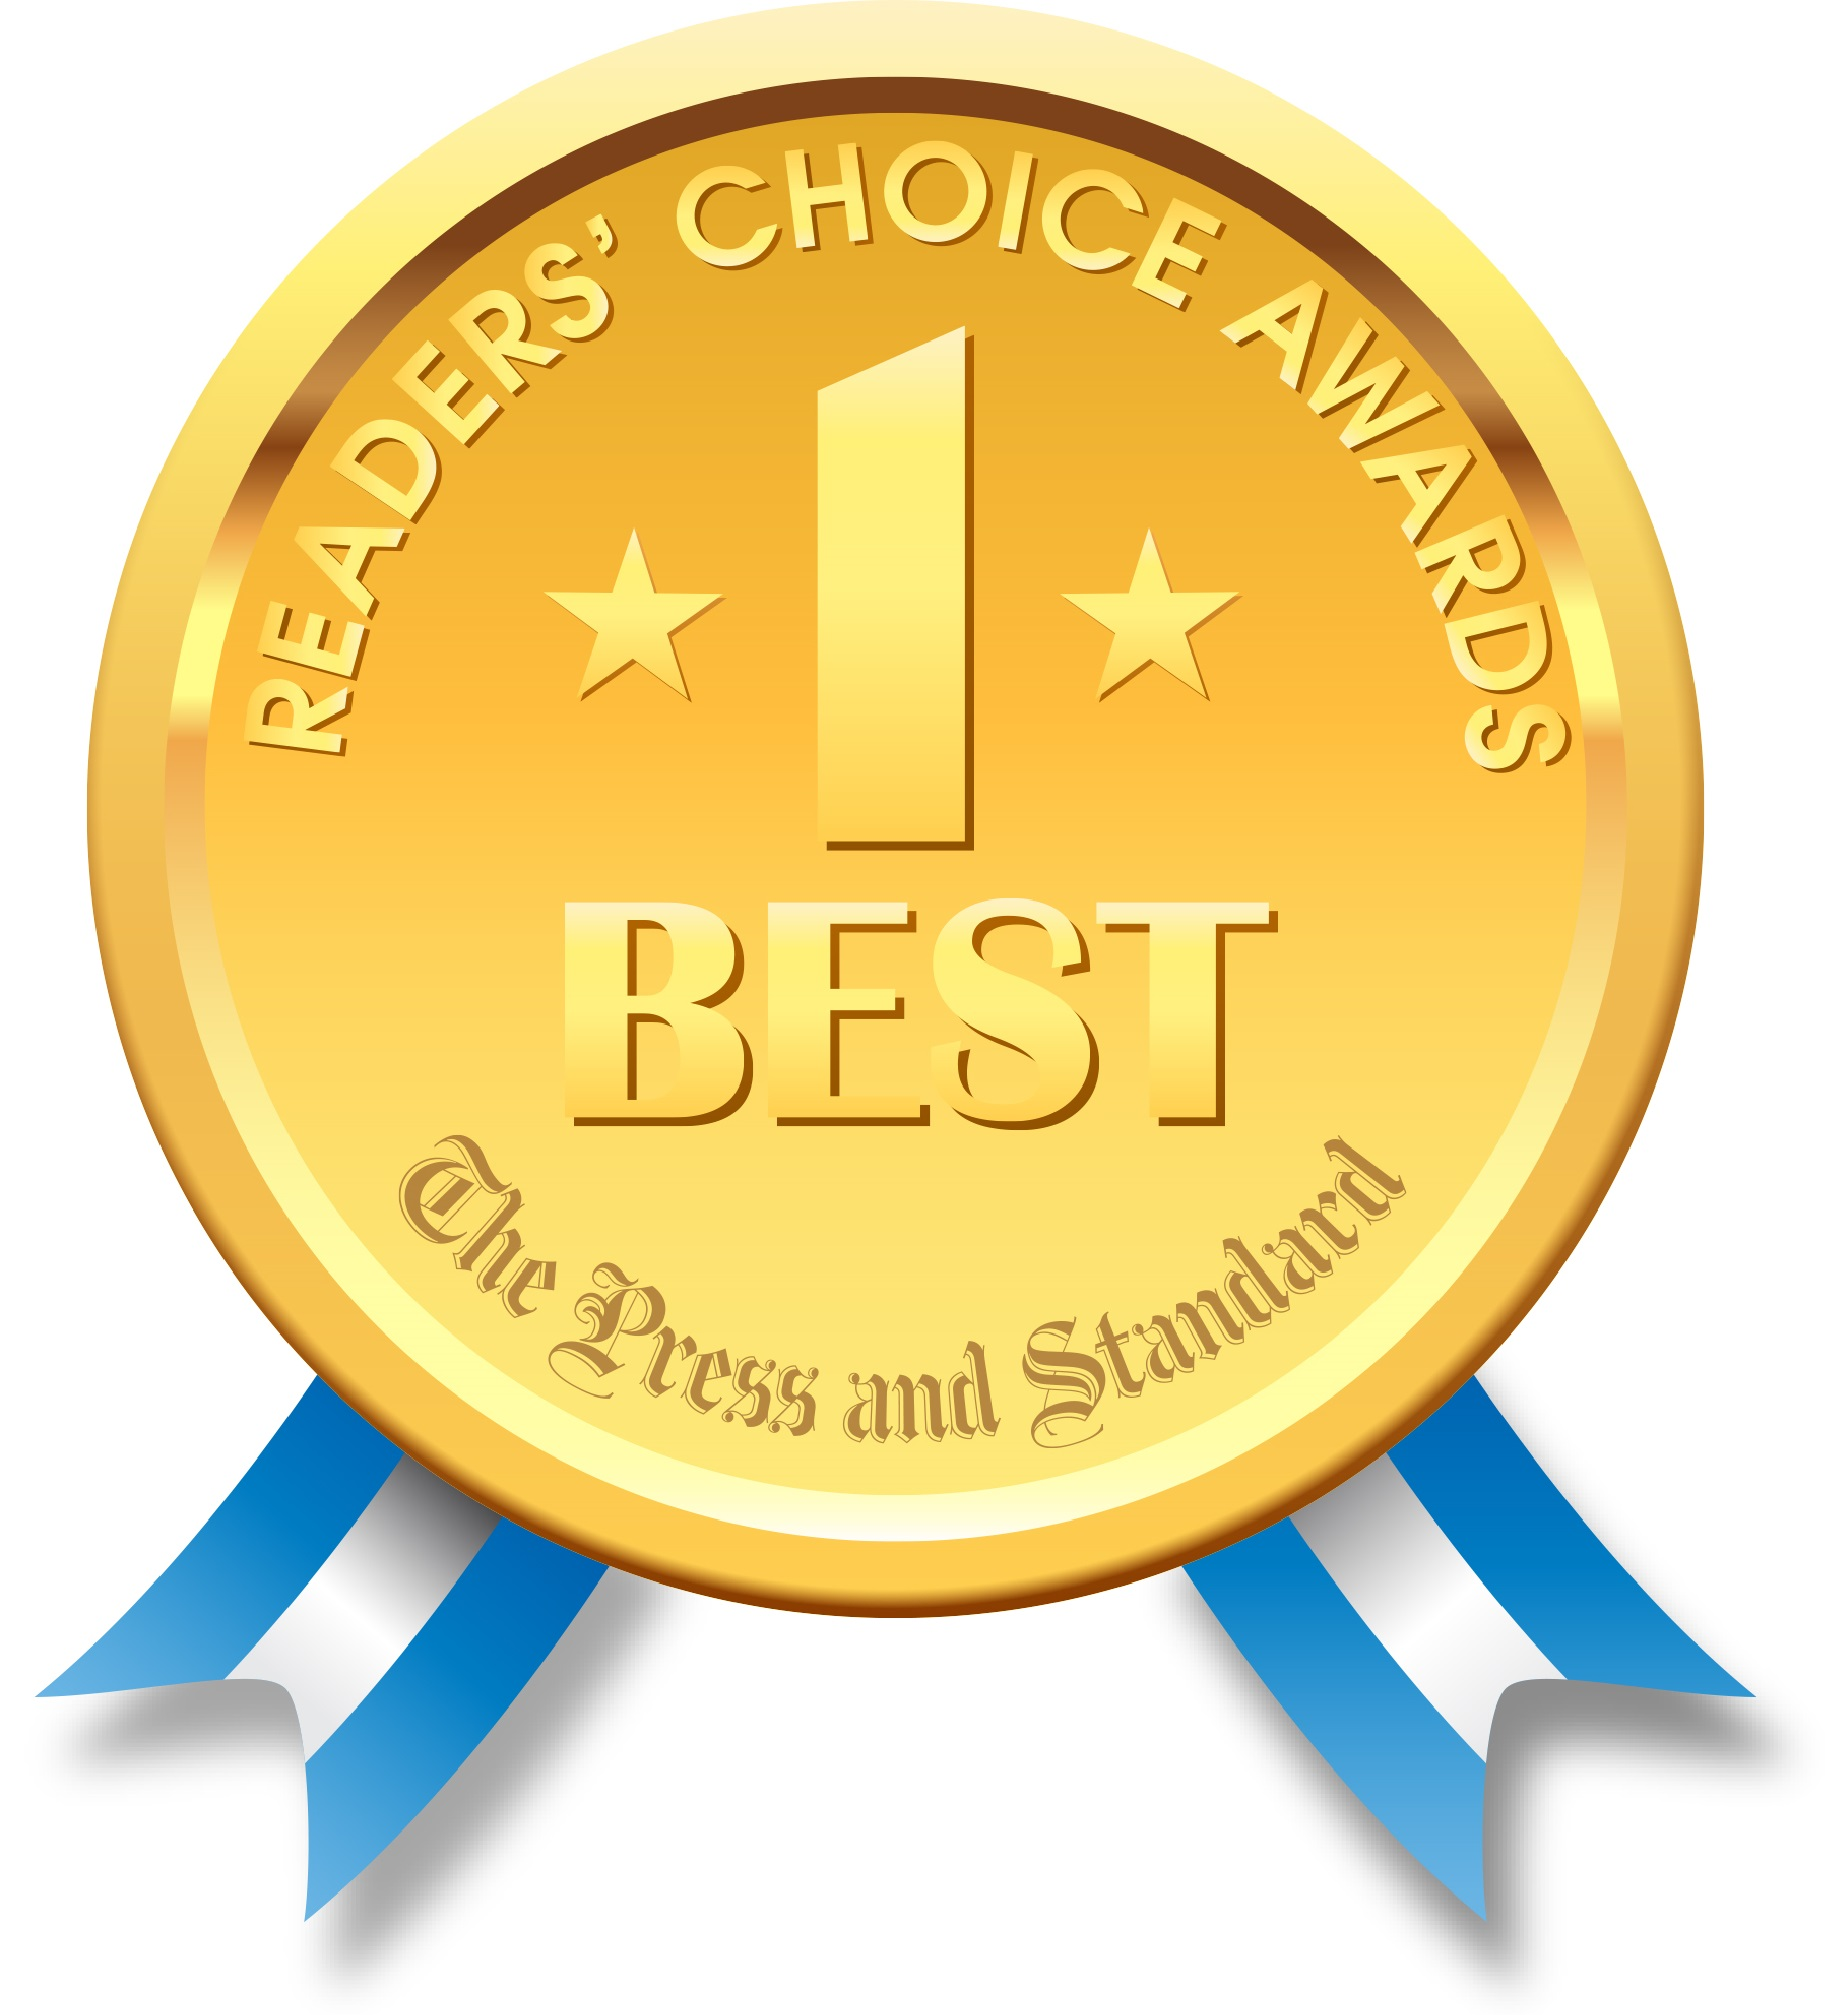 Voted #1 Hearing Aid Store by Reader's Choice